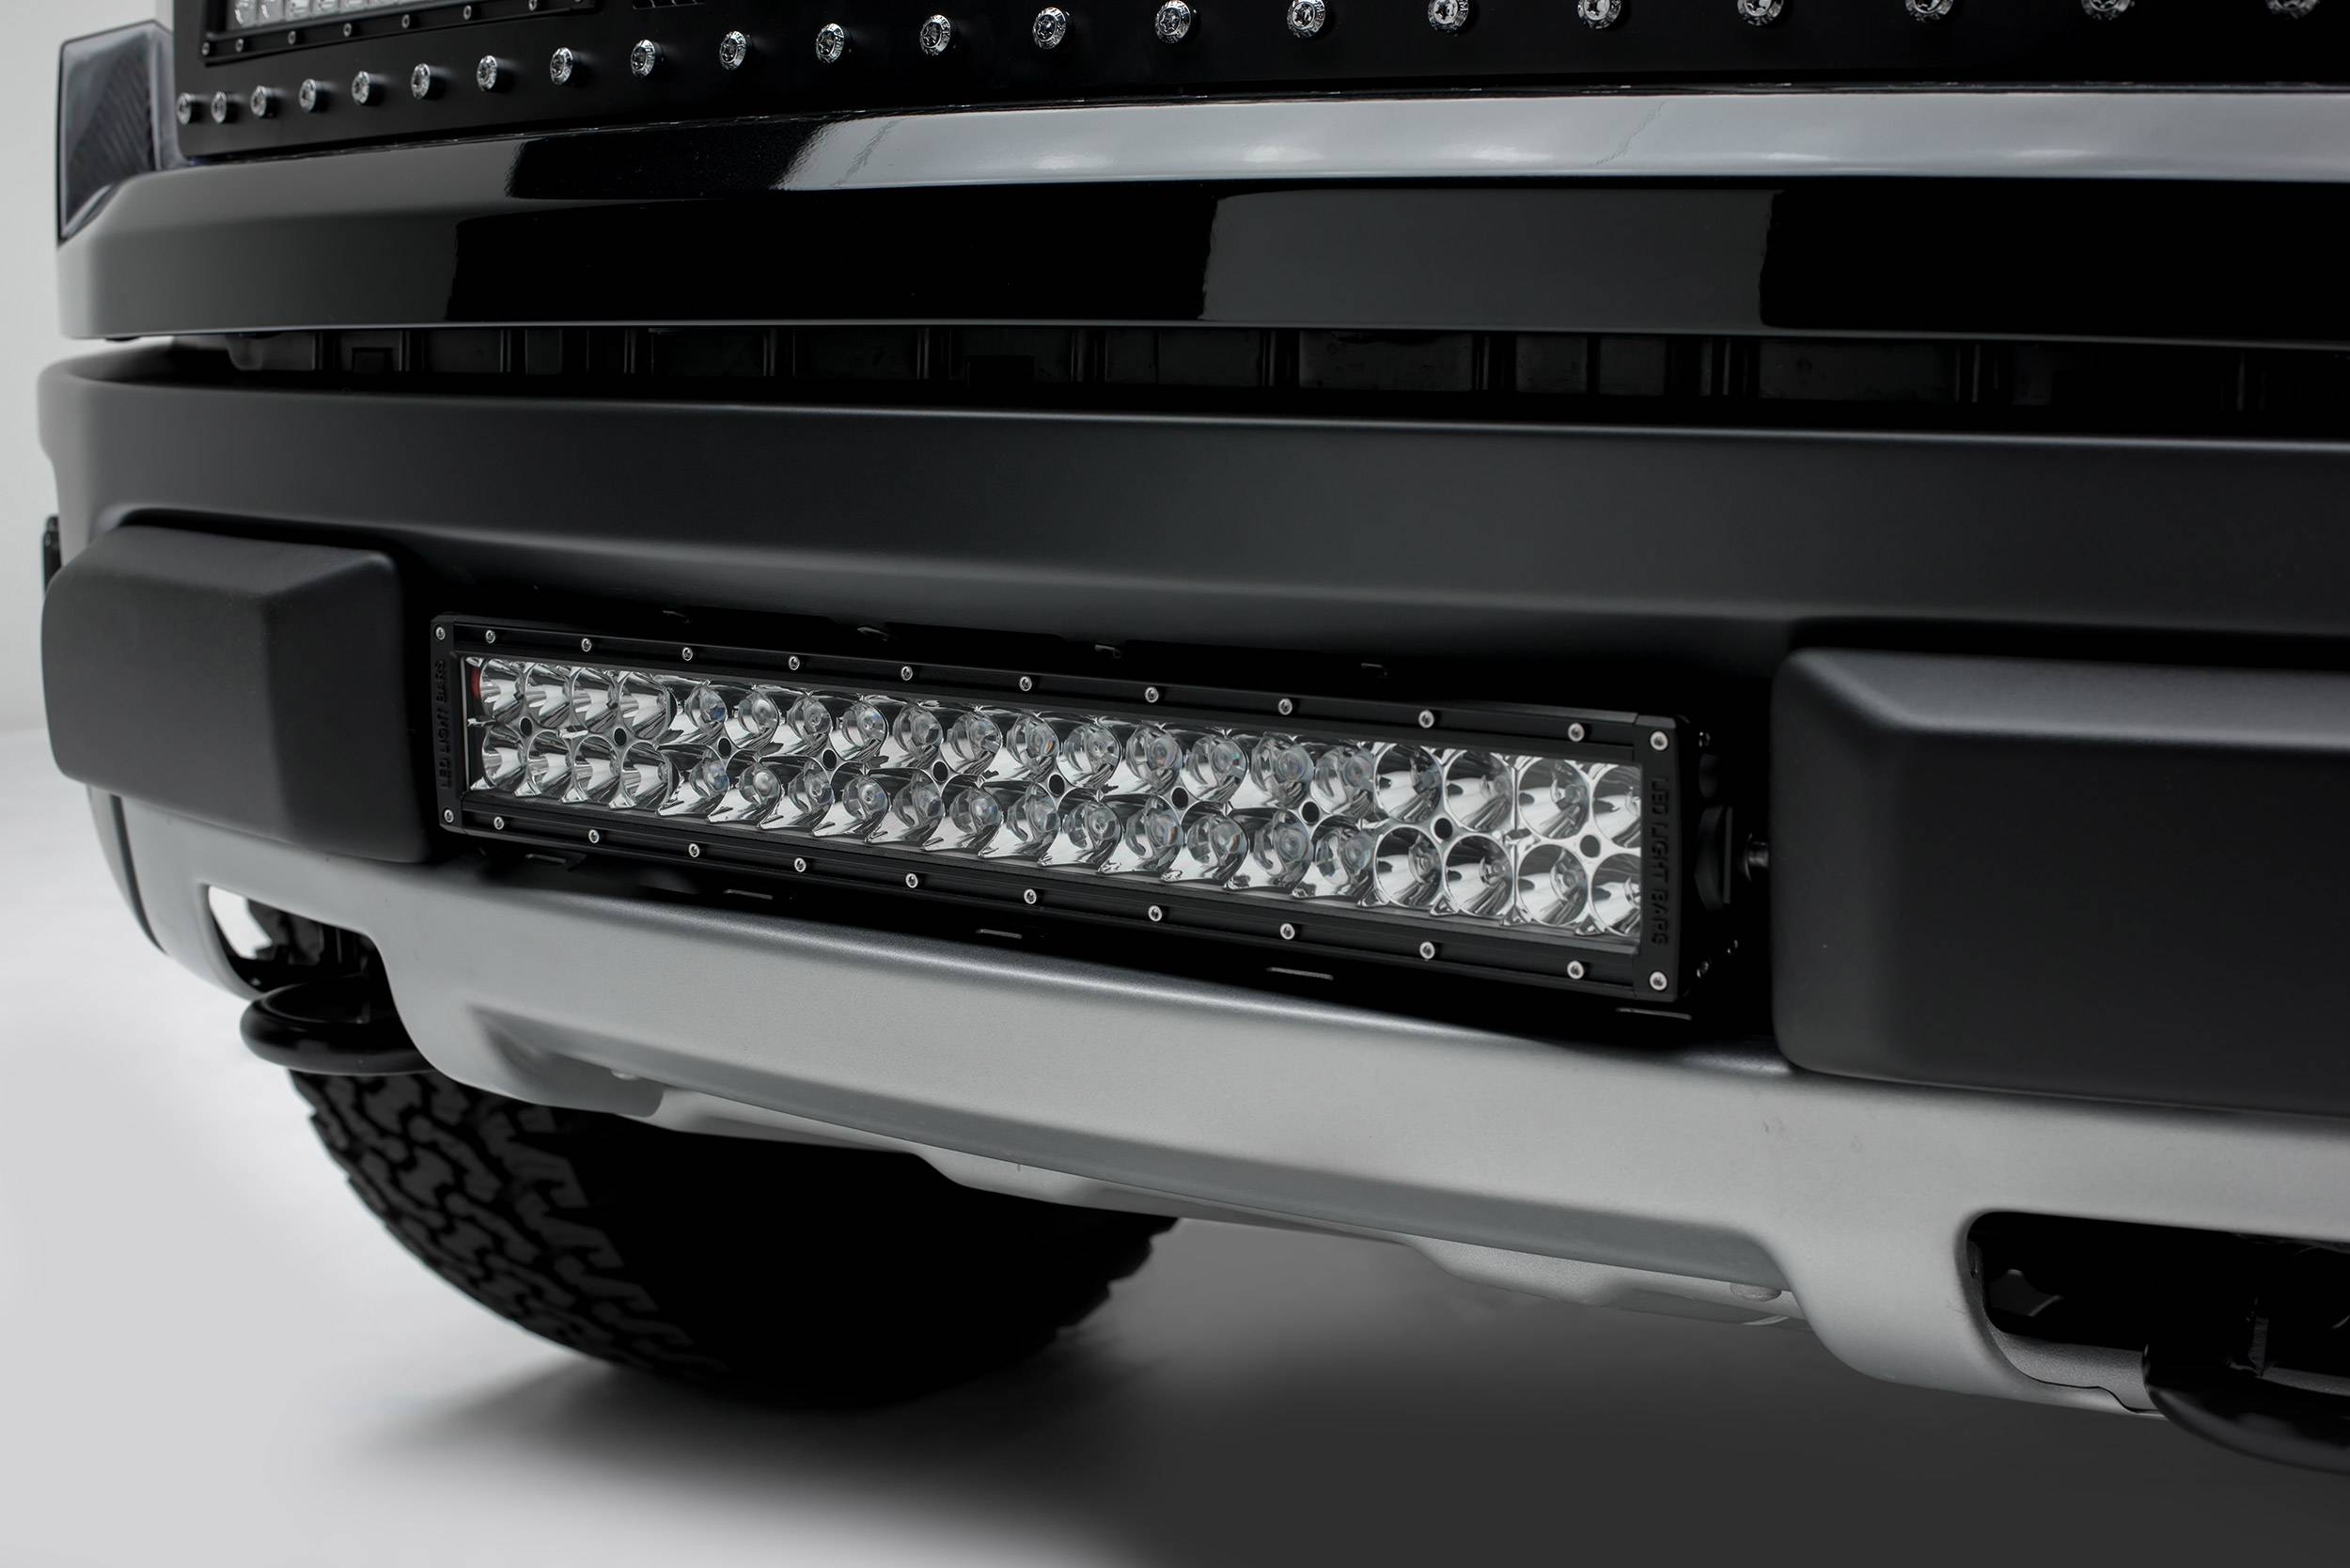 ZROADZ                                             - 2010-2014 Ford F-150 Raptor Front Bumper Center LED Bracket to mount 20 Inch LED Light Bar - PN #Z325661